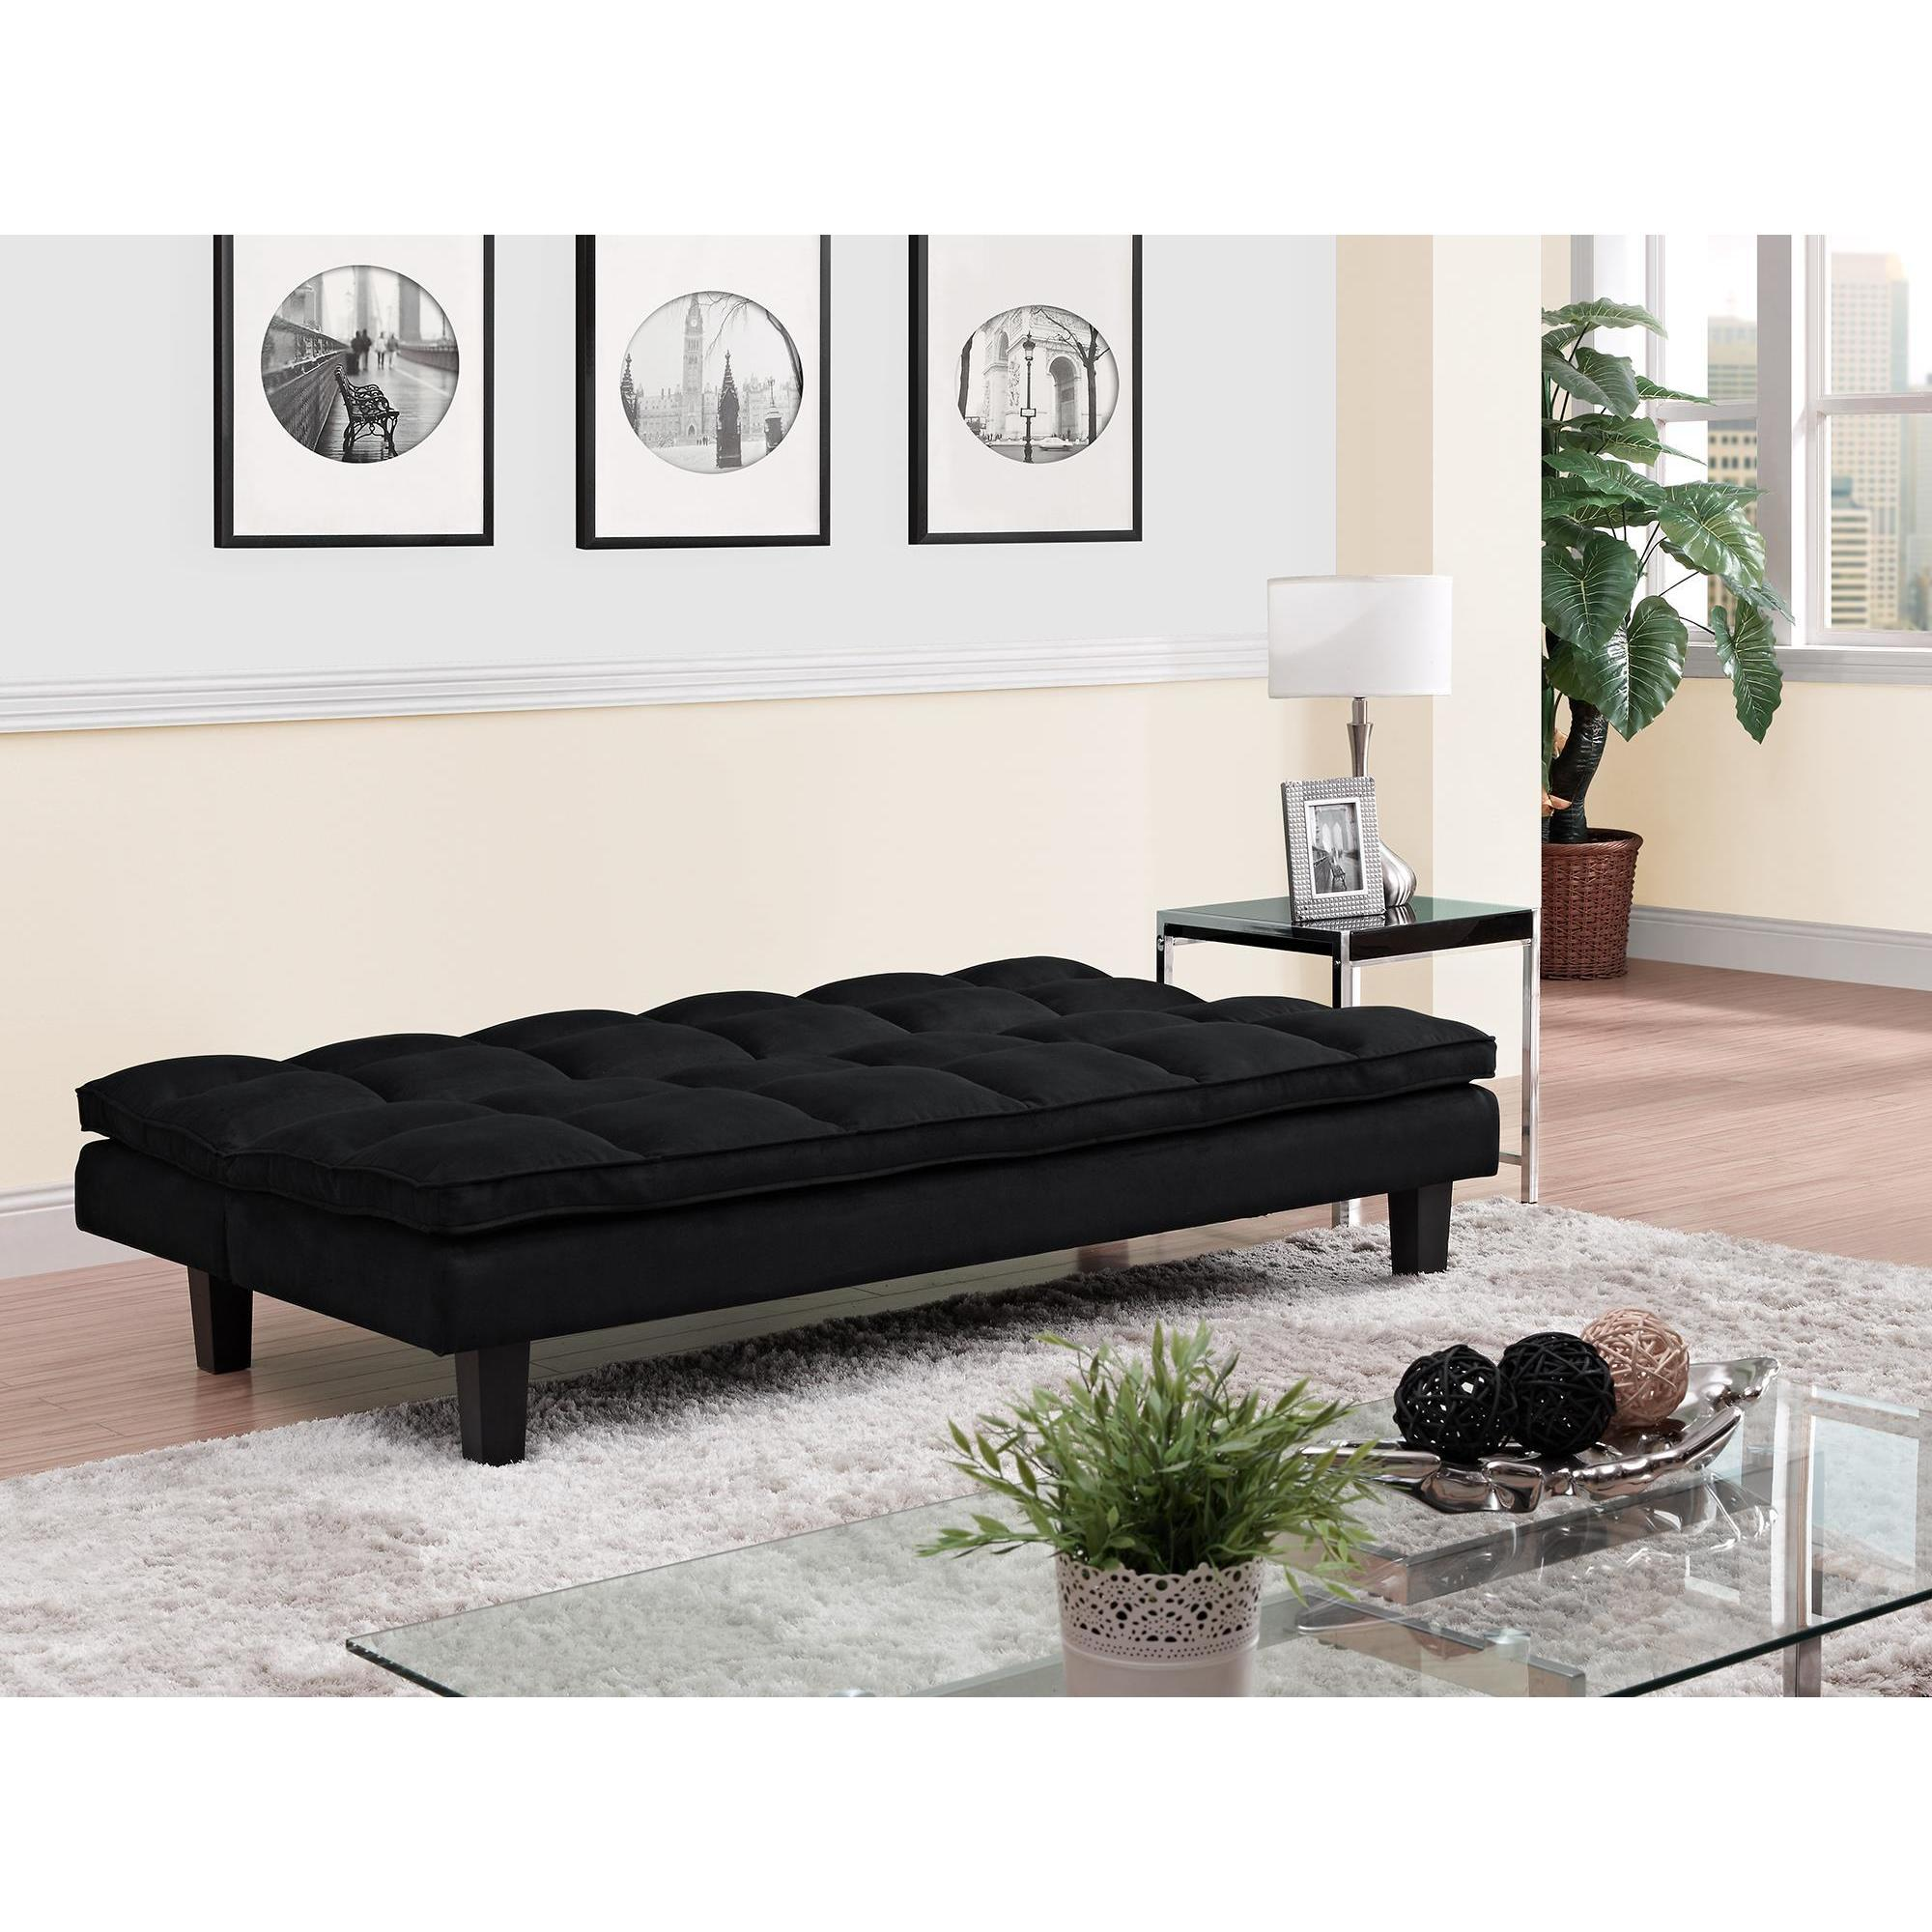 Dhp Allegra Pillowtop Black Futon On Free Shipping Today Com 16635331